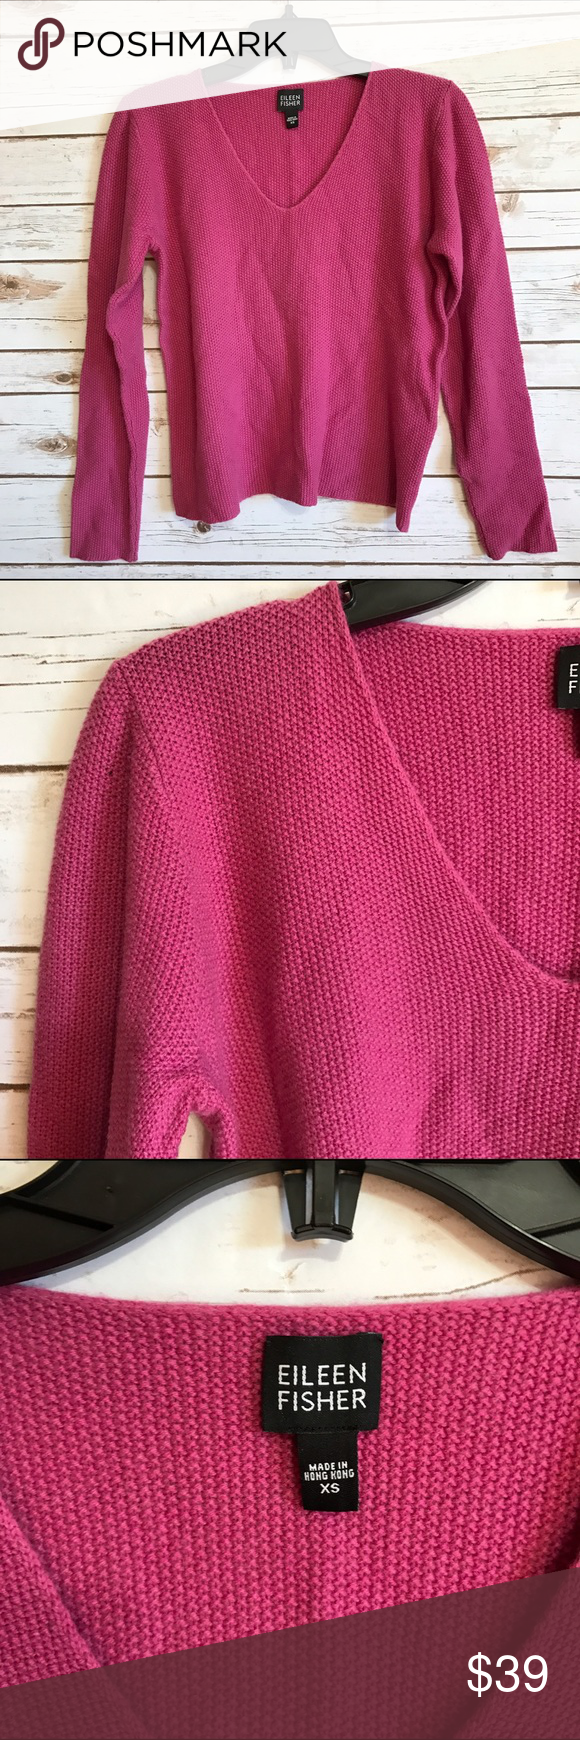 NEW LISTING💜 Eileen Fisher pink cashmere sweater Size XS. V-neck pullover textured sweater. 100% cashmere. EUC (2.20.0)  💟Fast 1-2 day shipping 💟Reasonable offers accepted 💟Purchase 3 or more items & get a special bundle rate!  💟Smoke-free home Eileen Fisher Sweaters V-Necks